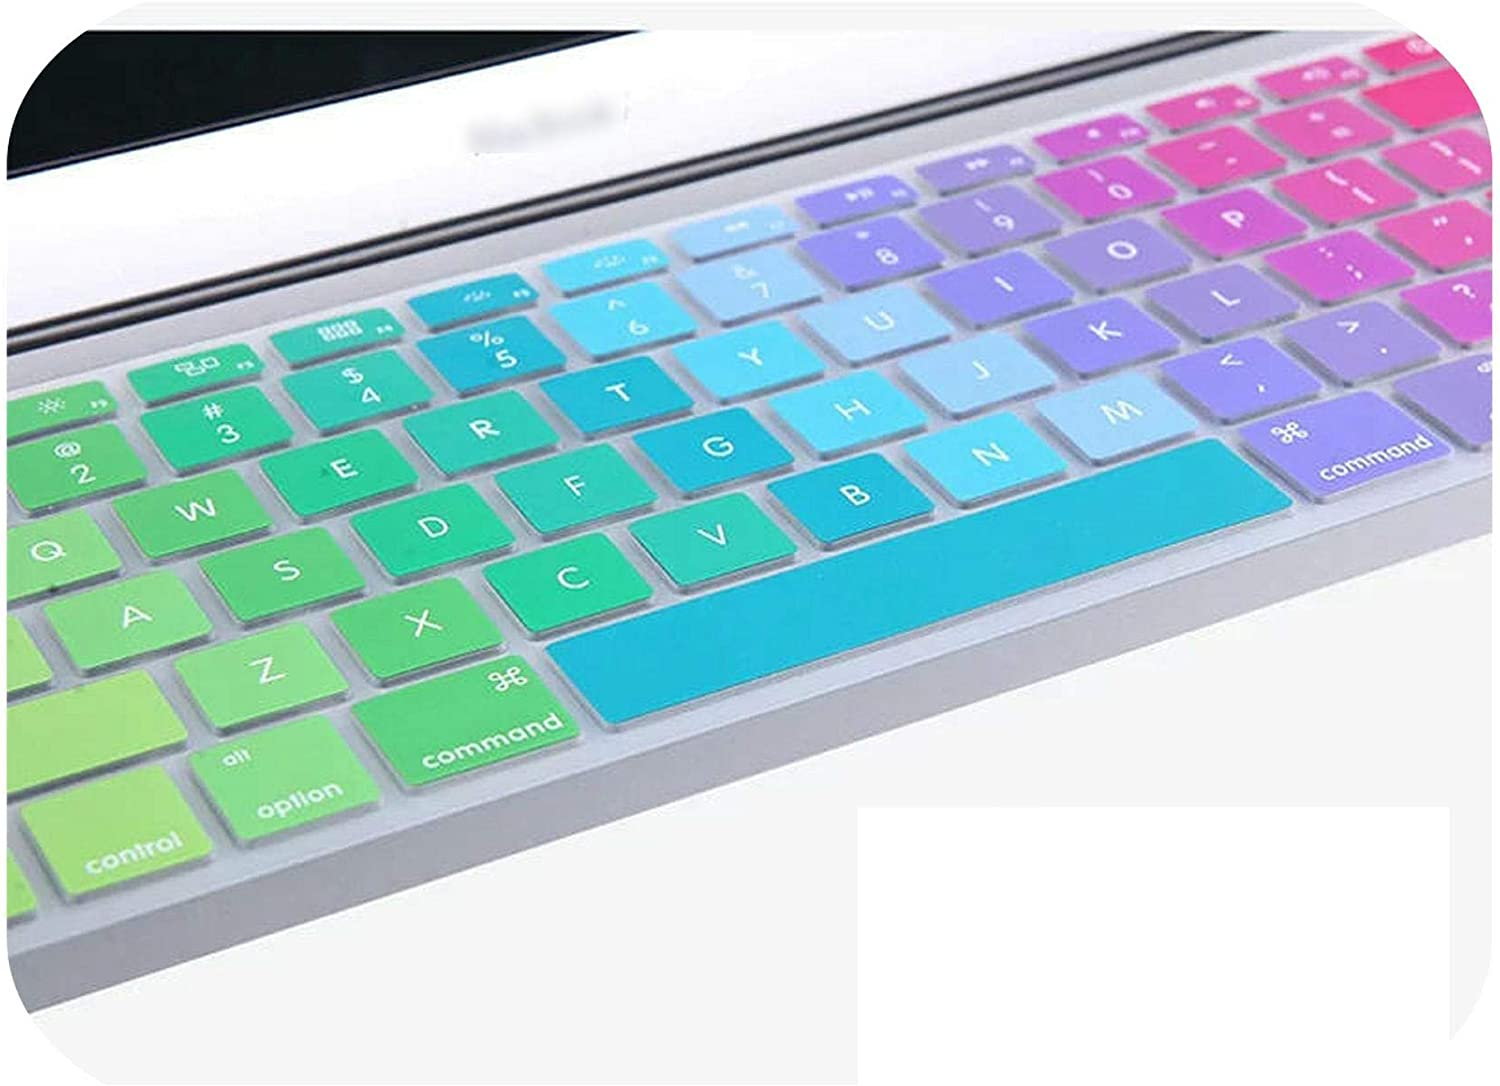 Rainbow Us English Letter Colorful Silicone Keyboard Cover for MacBook Air 12 //New 2016 Pro 13 Non Touch Bar A1708